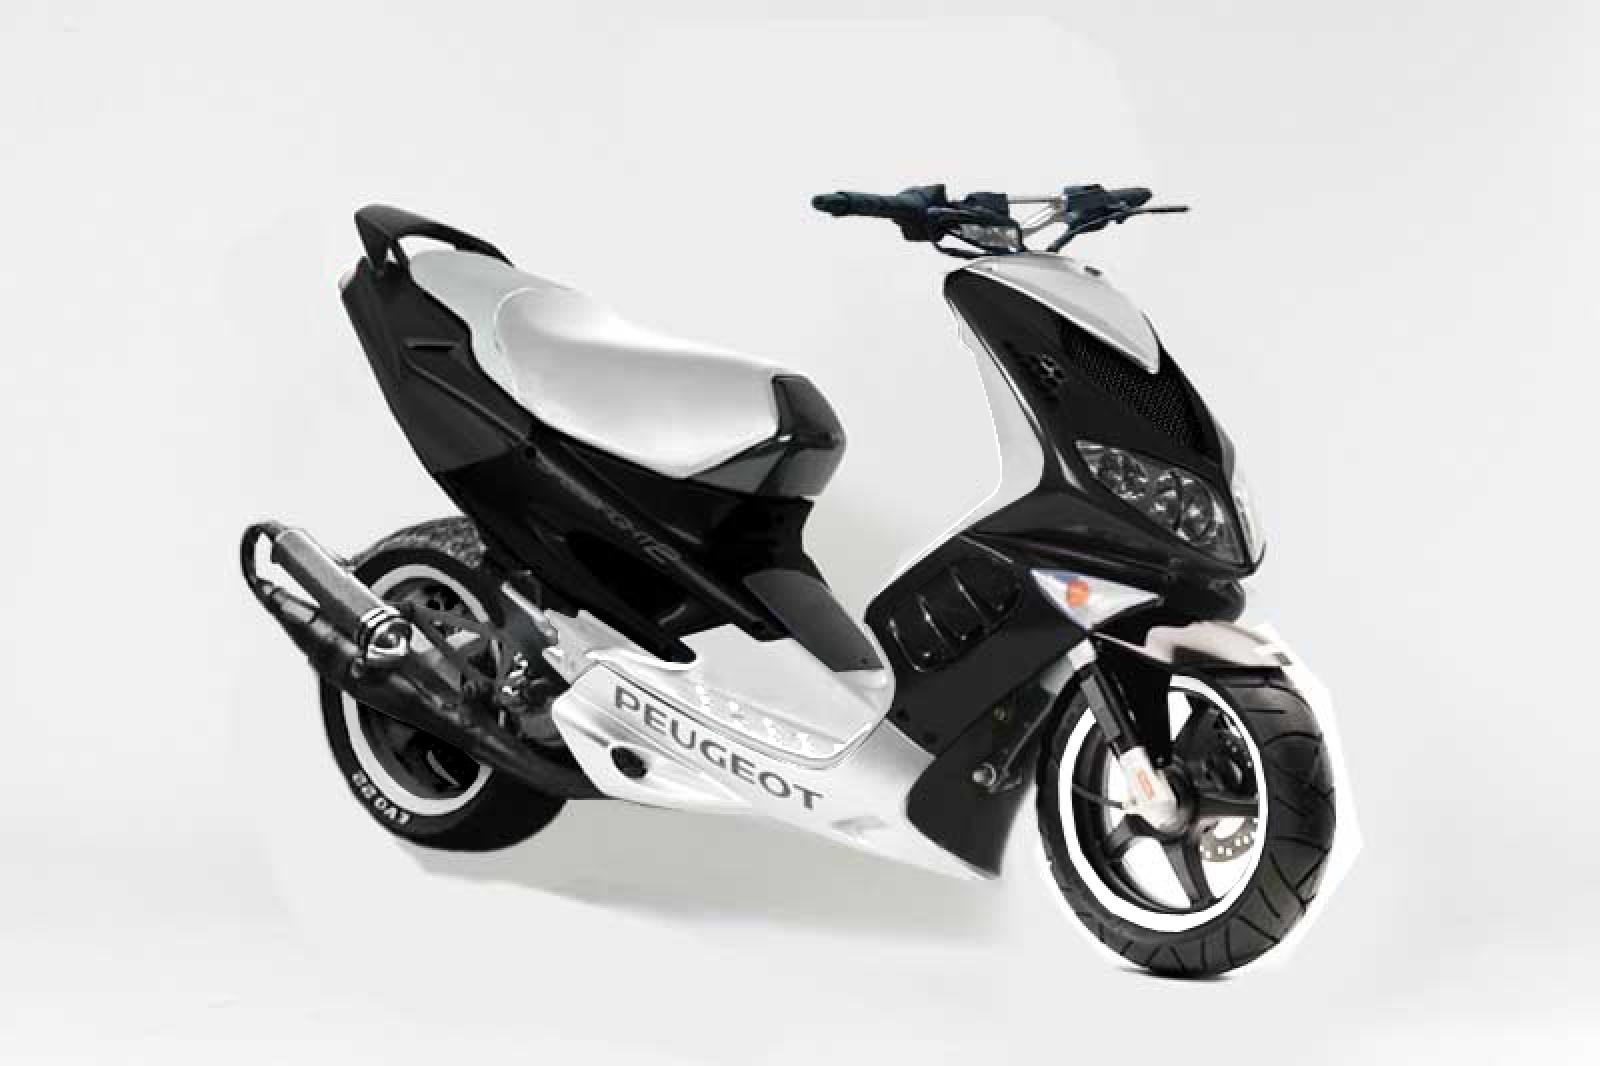 2008 peugeot speedfight utlimate edition moto zombdrive com. Black Bedroom Furniture Sets. Home Design Ideas